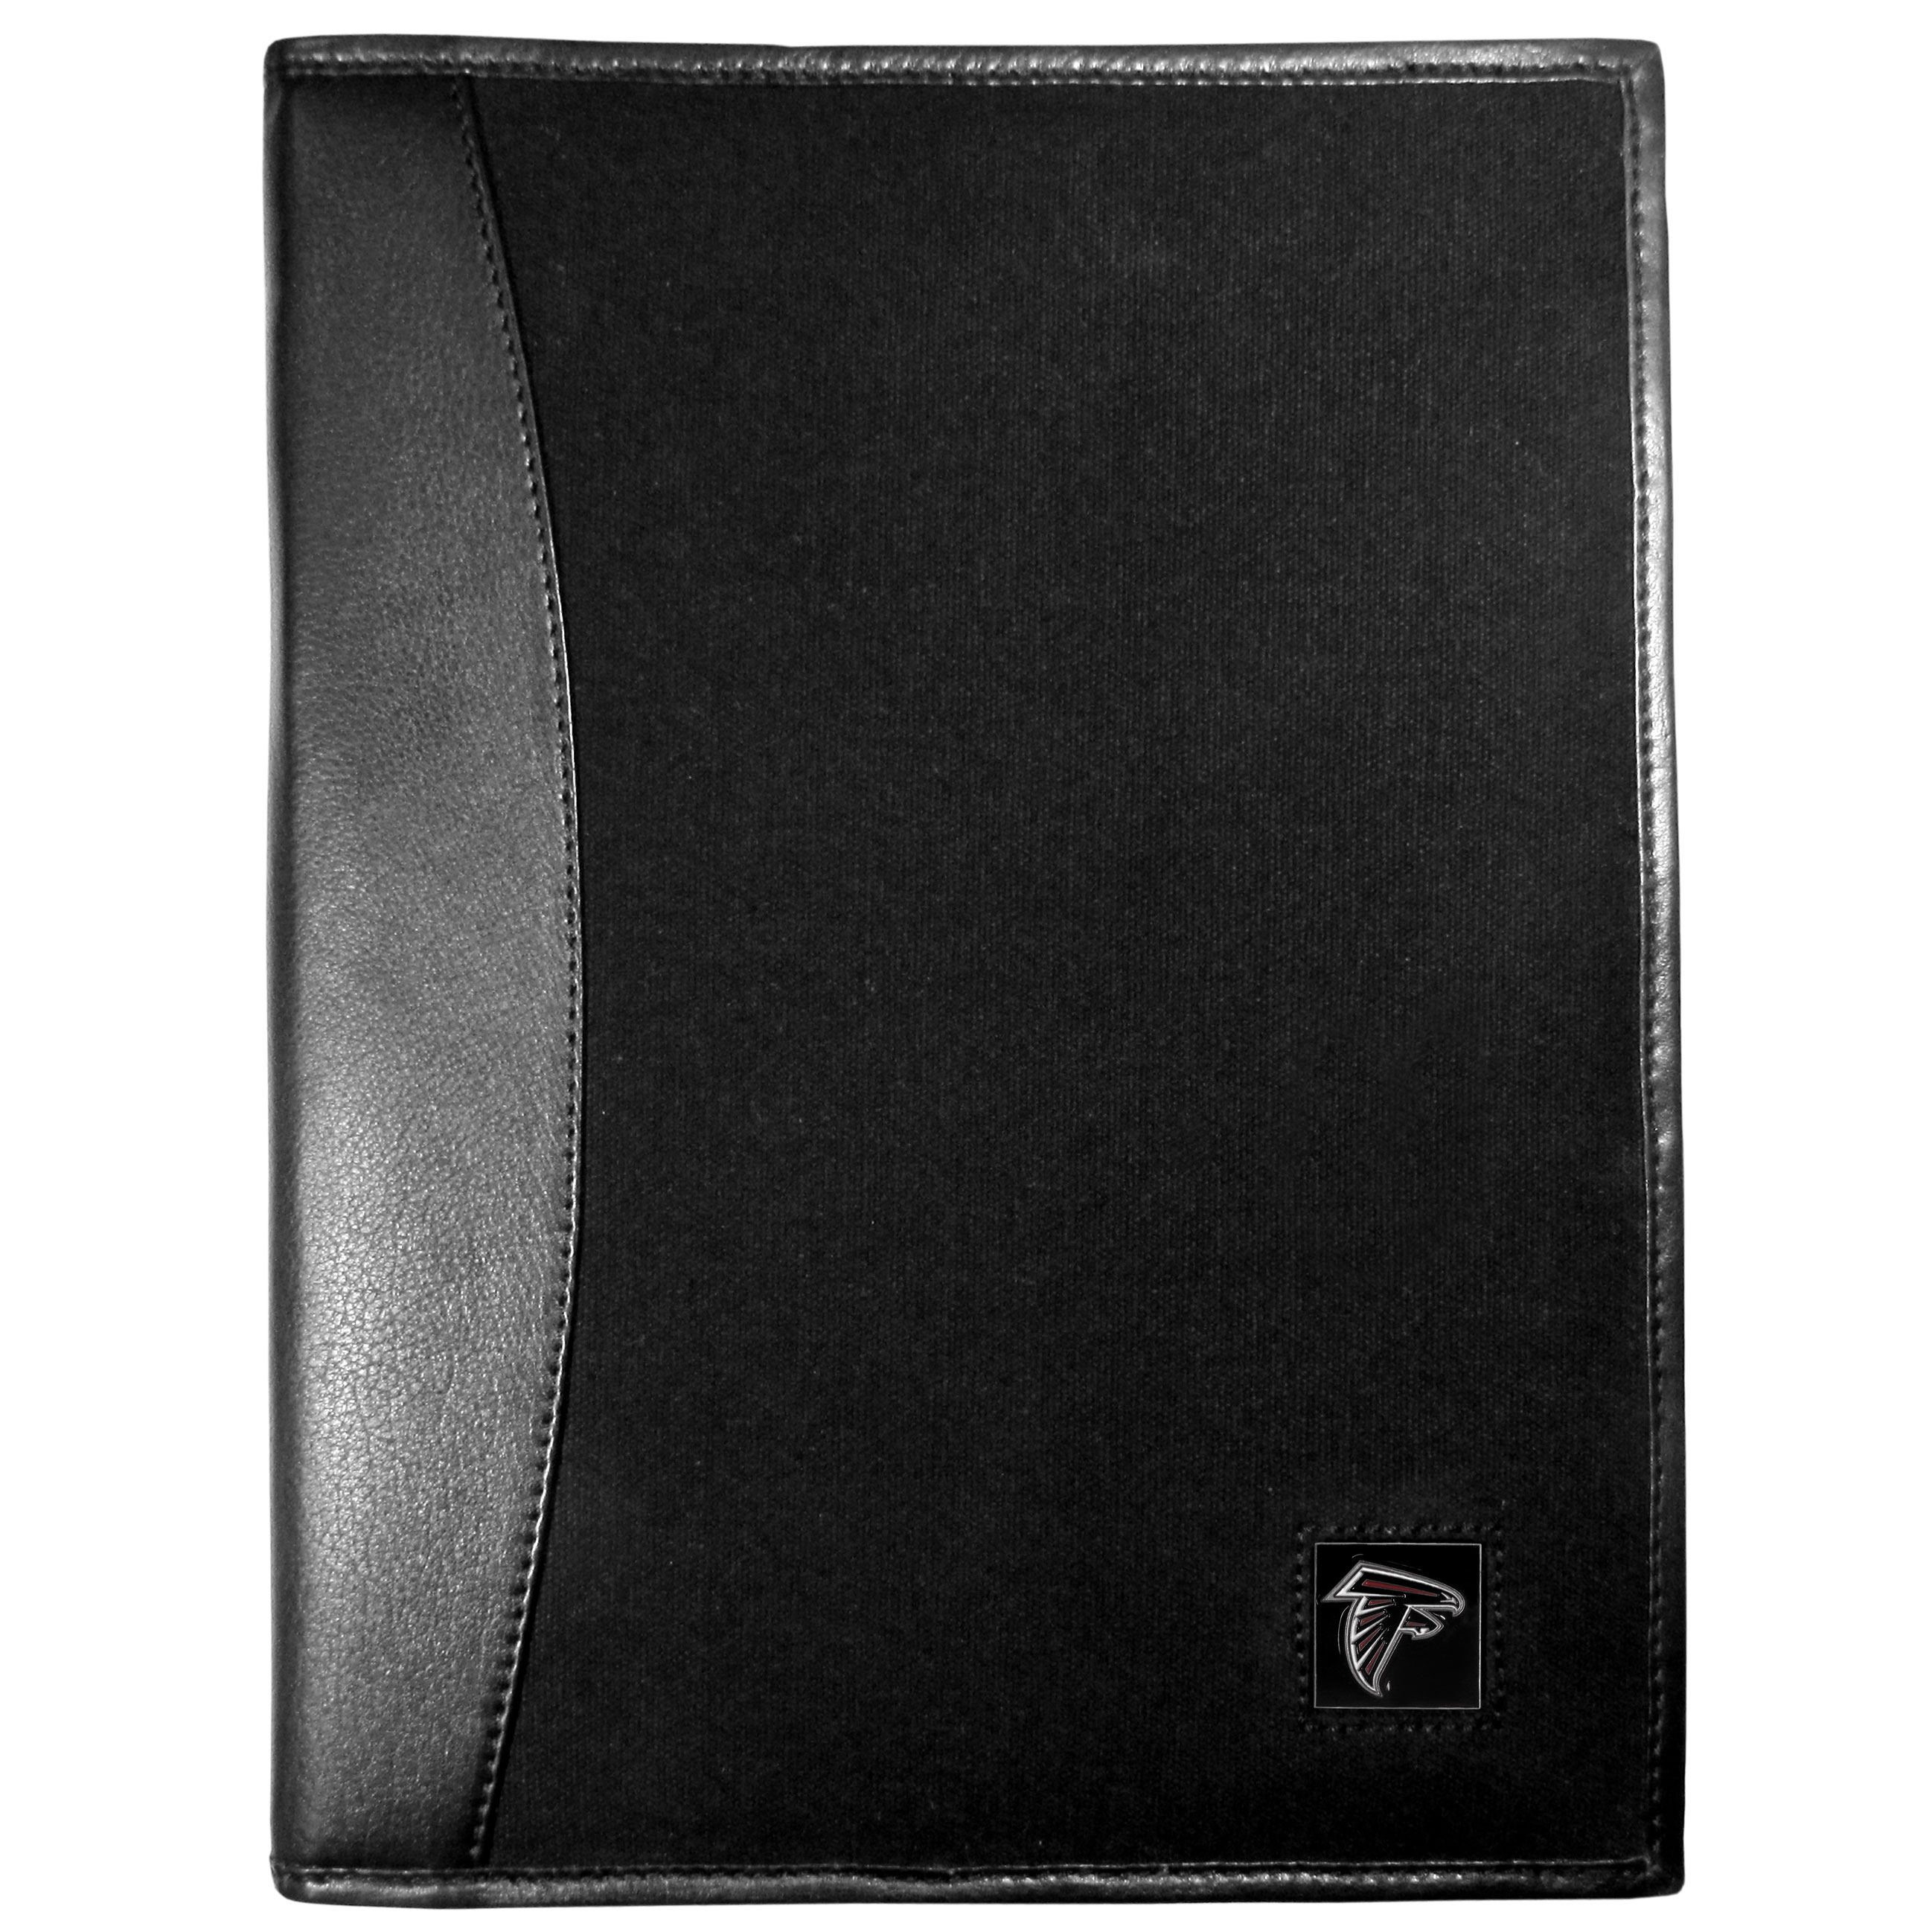 Atlanta Falcons Leather and Canvas Padfolio - Our leather and canvas padfolio perfectly blends form and function. The attractive portfolio is bound in fine grain leather with an attractive canvas finish and the interior is a soft nylon. This high quality business accessory also features a fully cast metal Atlanta Falcons emblem that is subtly set in the corner of the organizer. It is packed with features like 6 card slots for badges, business cards, hotel keys or credit cards and ID with a large pocket for loose papers and a writing tablet slot making it a must-have for the professional on the go.